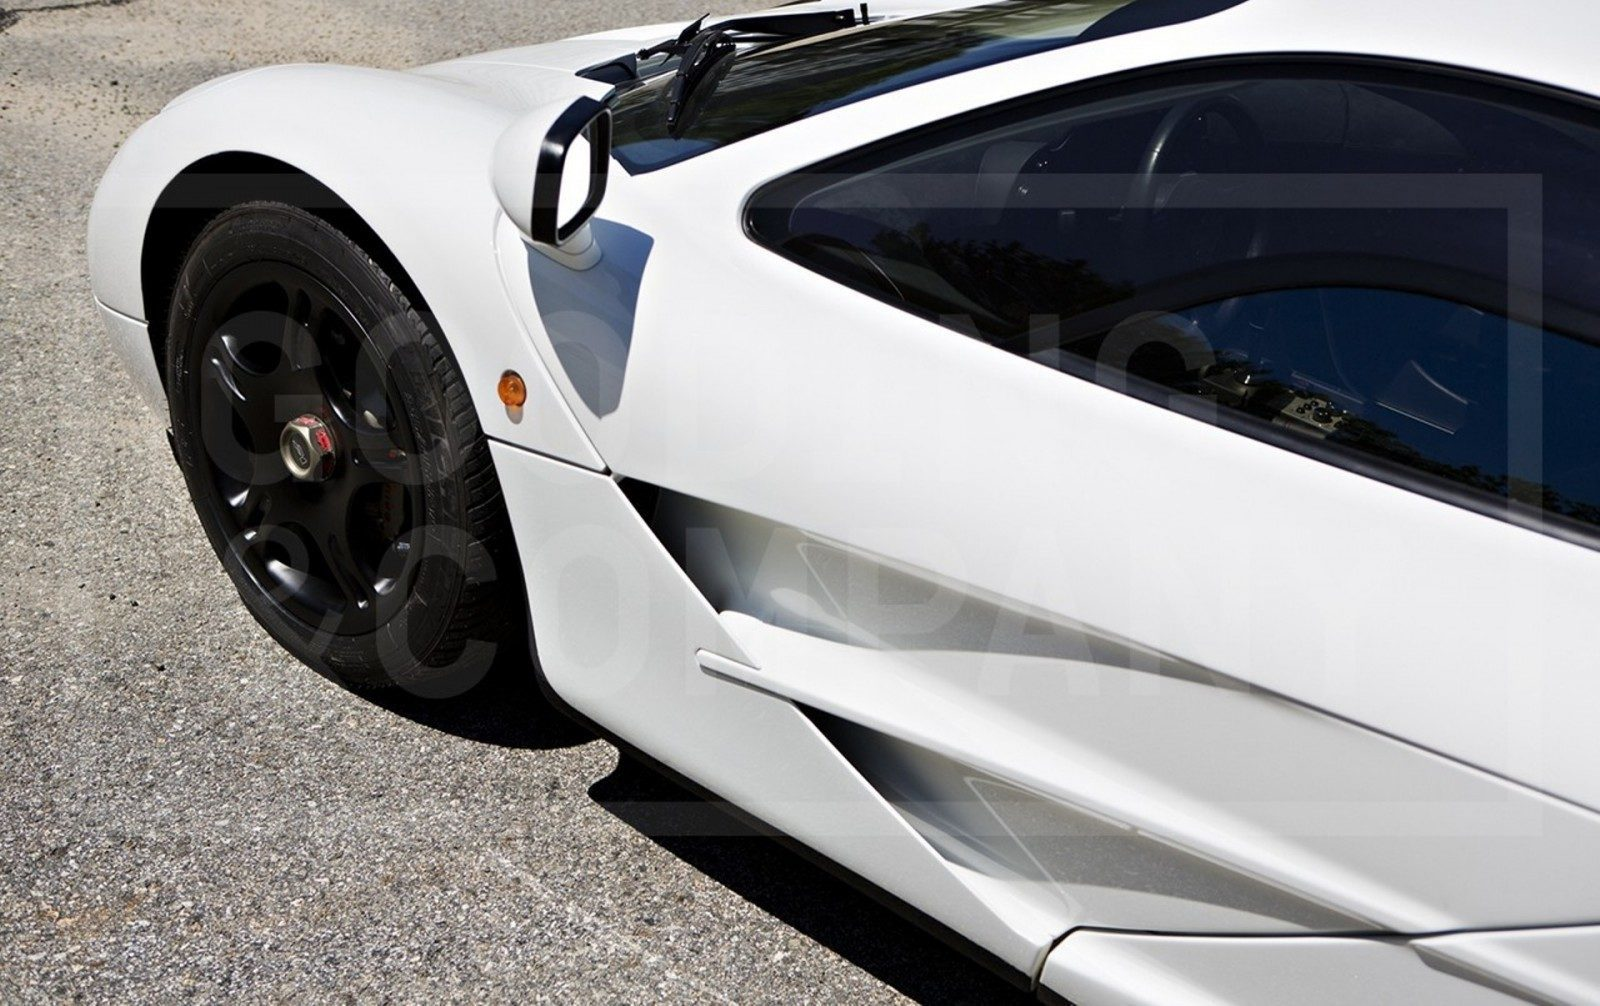 Gooding Pebble Beach 2014 Preview - 1995 McLaren F1 - The Only White F1 Ever Made = $12Mil+ 17